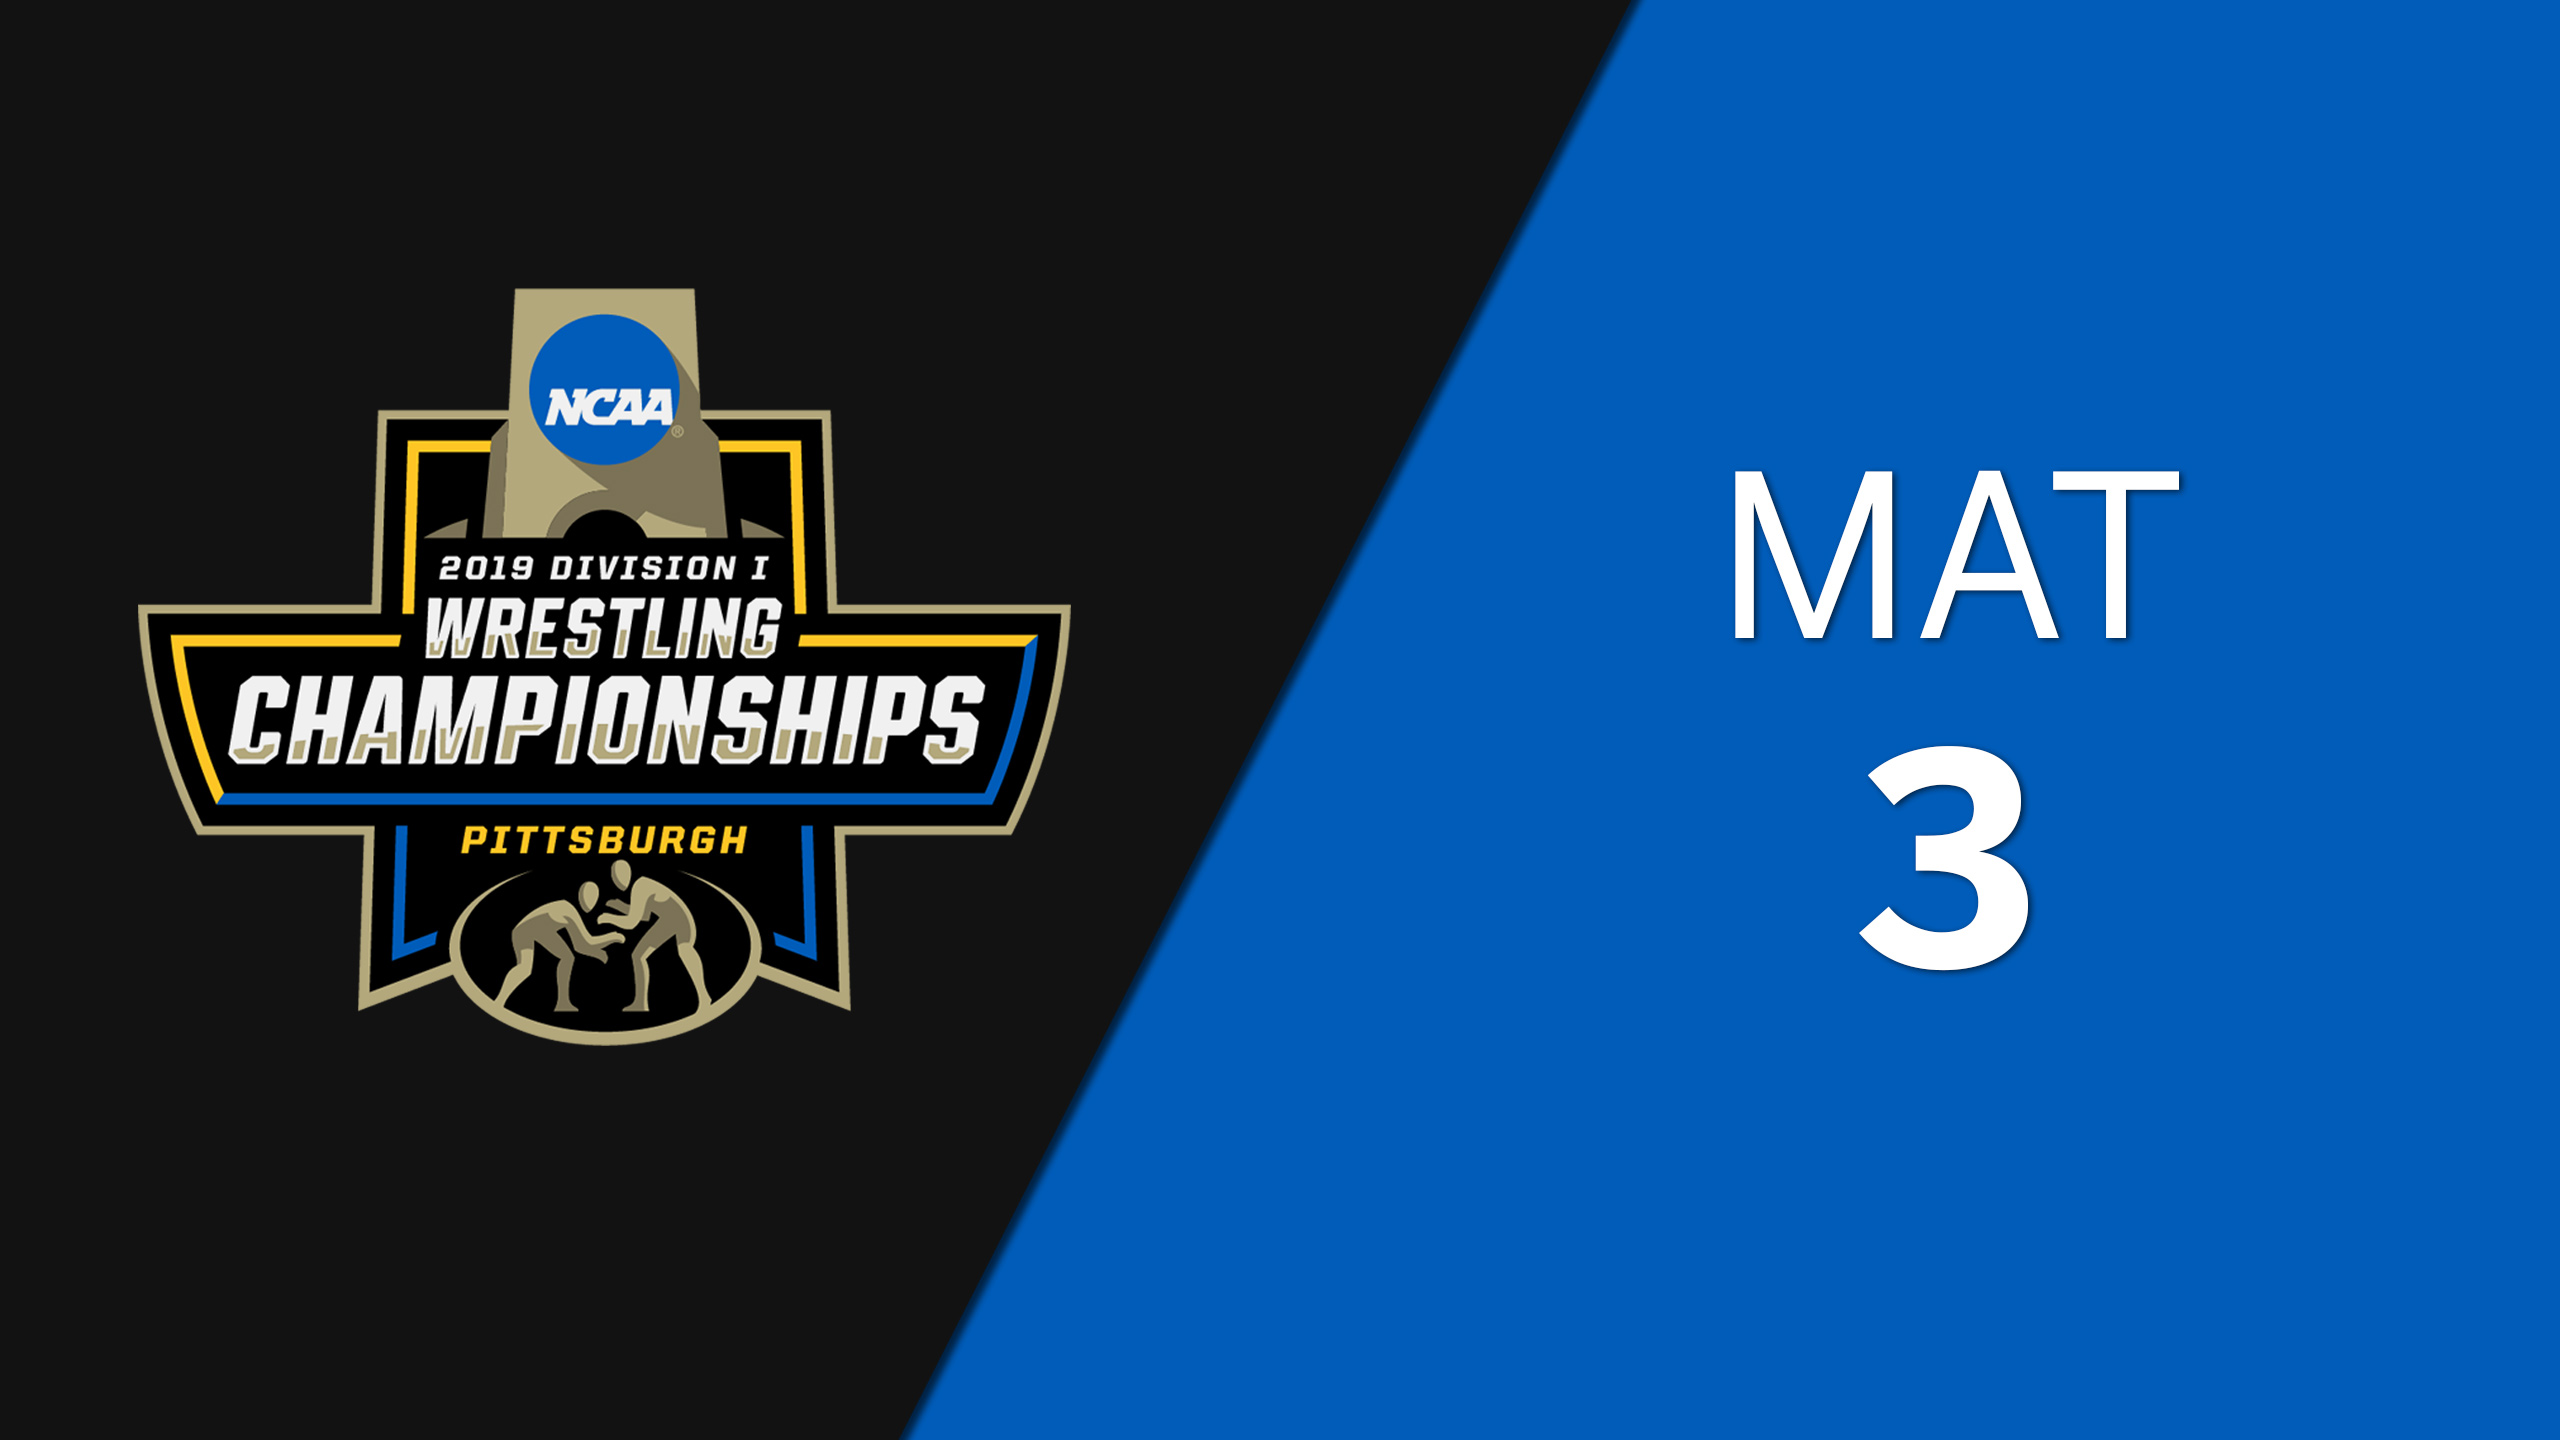 NCAA Wrestling Championship (Mat 3, First Round)